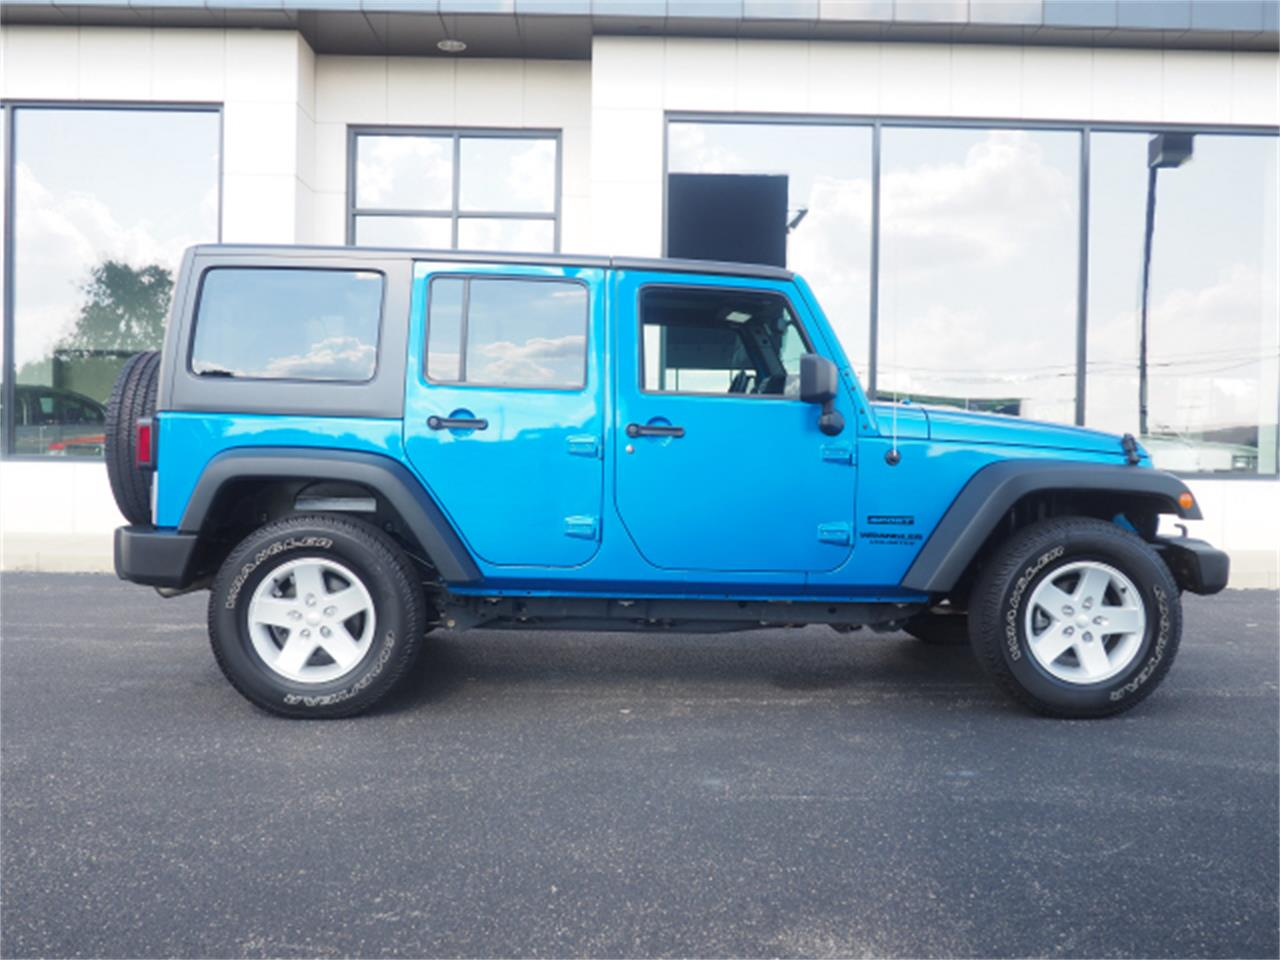 Large Picture of 2015 Wrangler - $27,999.00 Offered by Nelson Automotive, Ltd. - PPKW